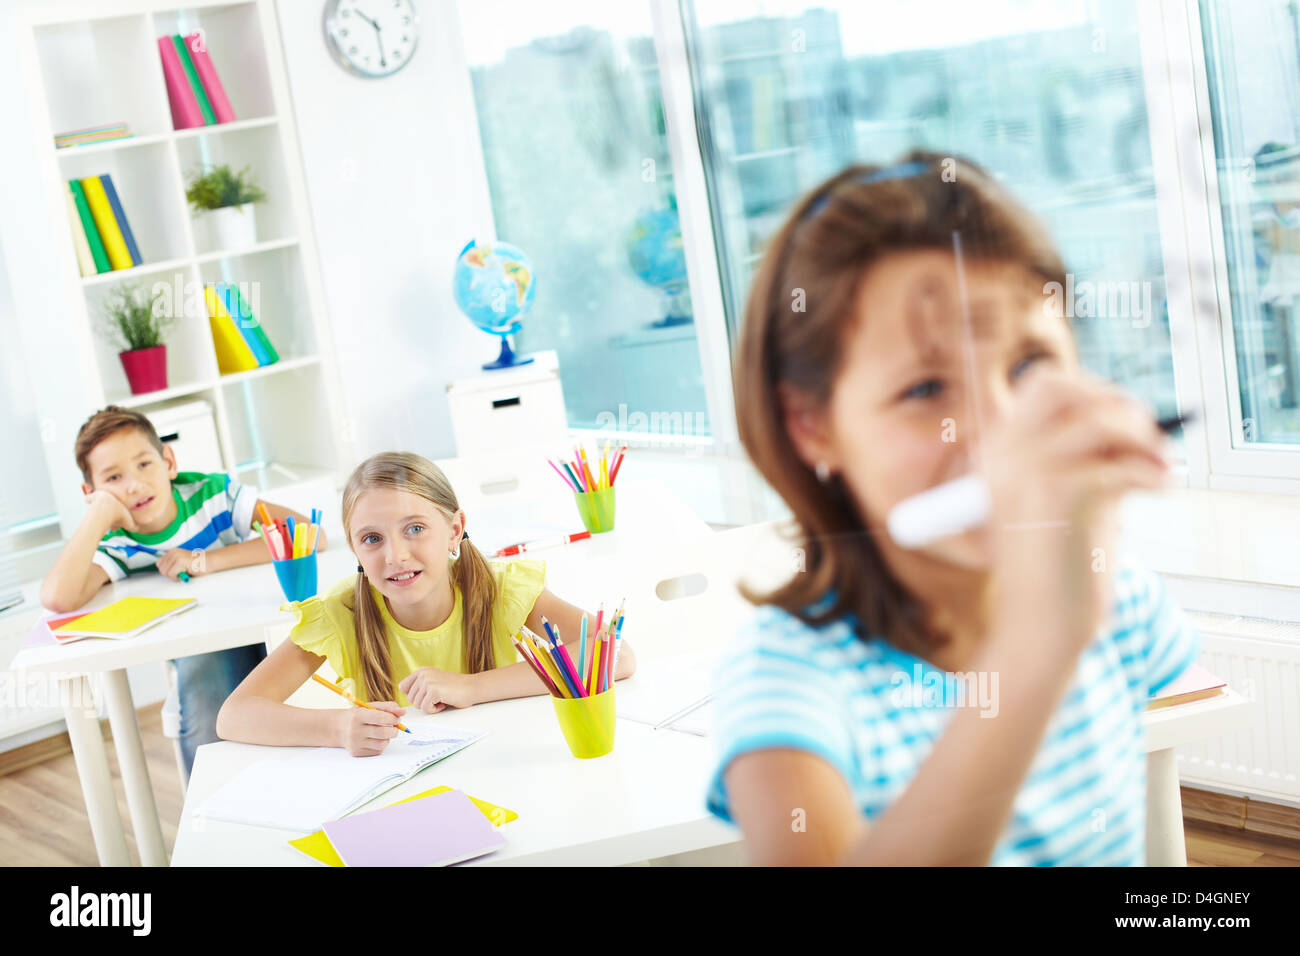 Schoolgirl doing sums on transparent board with two schoolmates looking at her - Stock Image